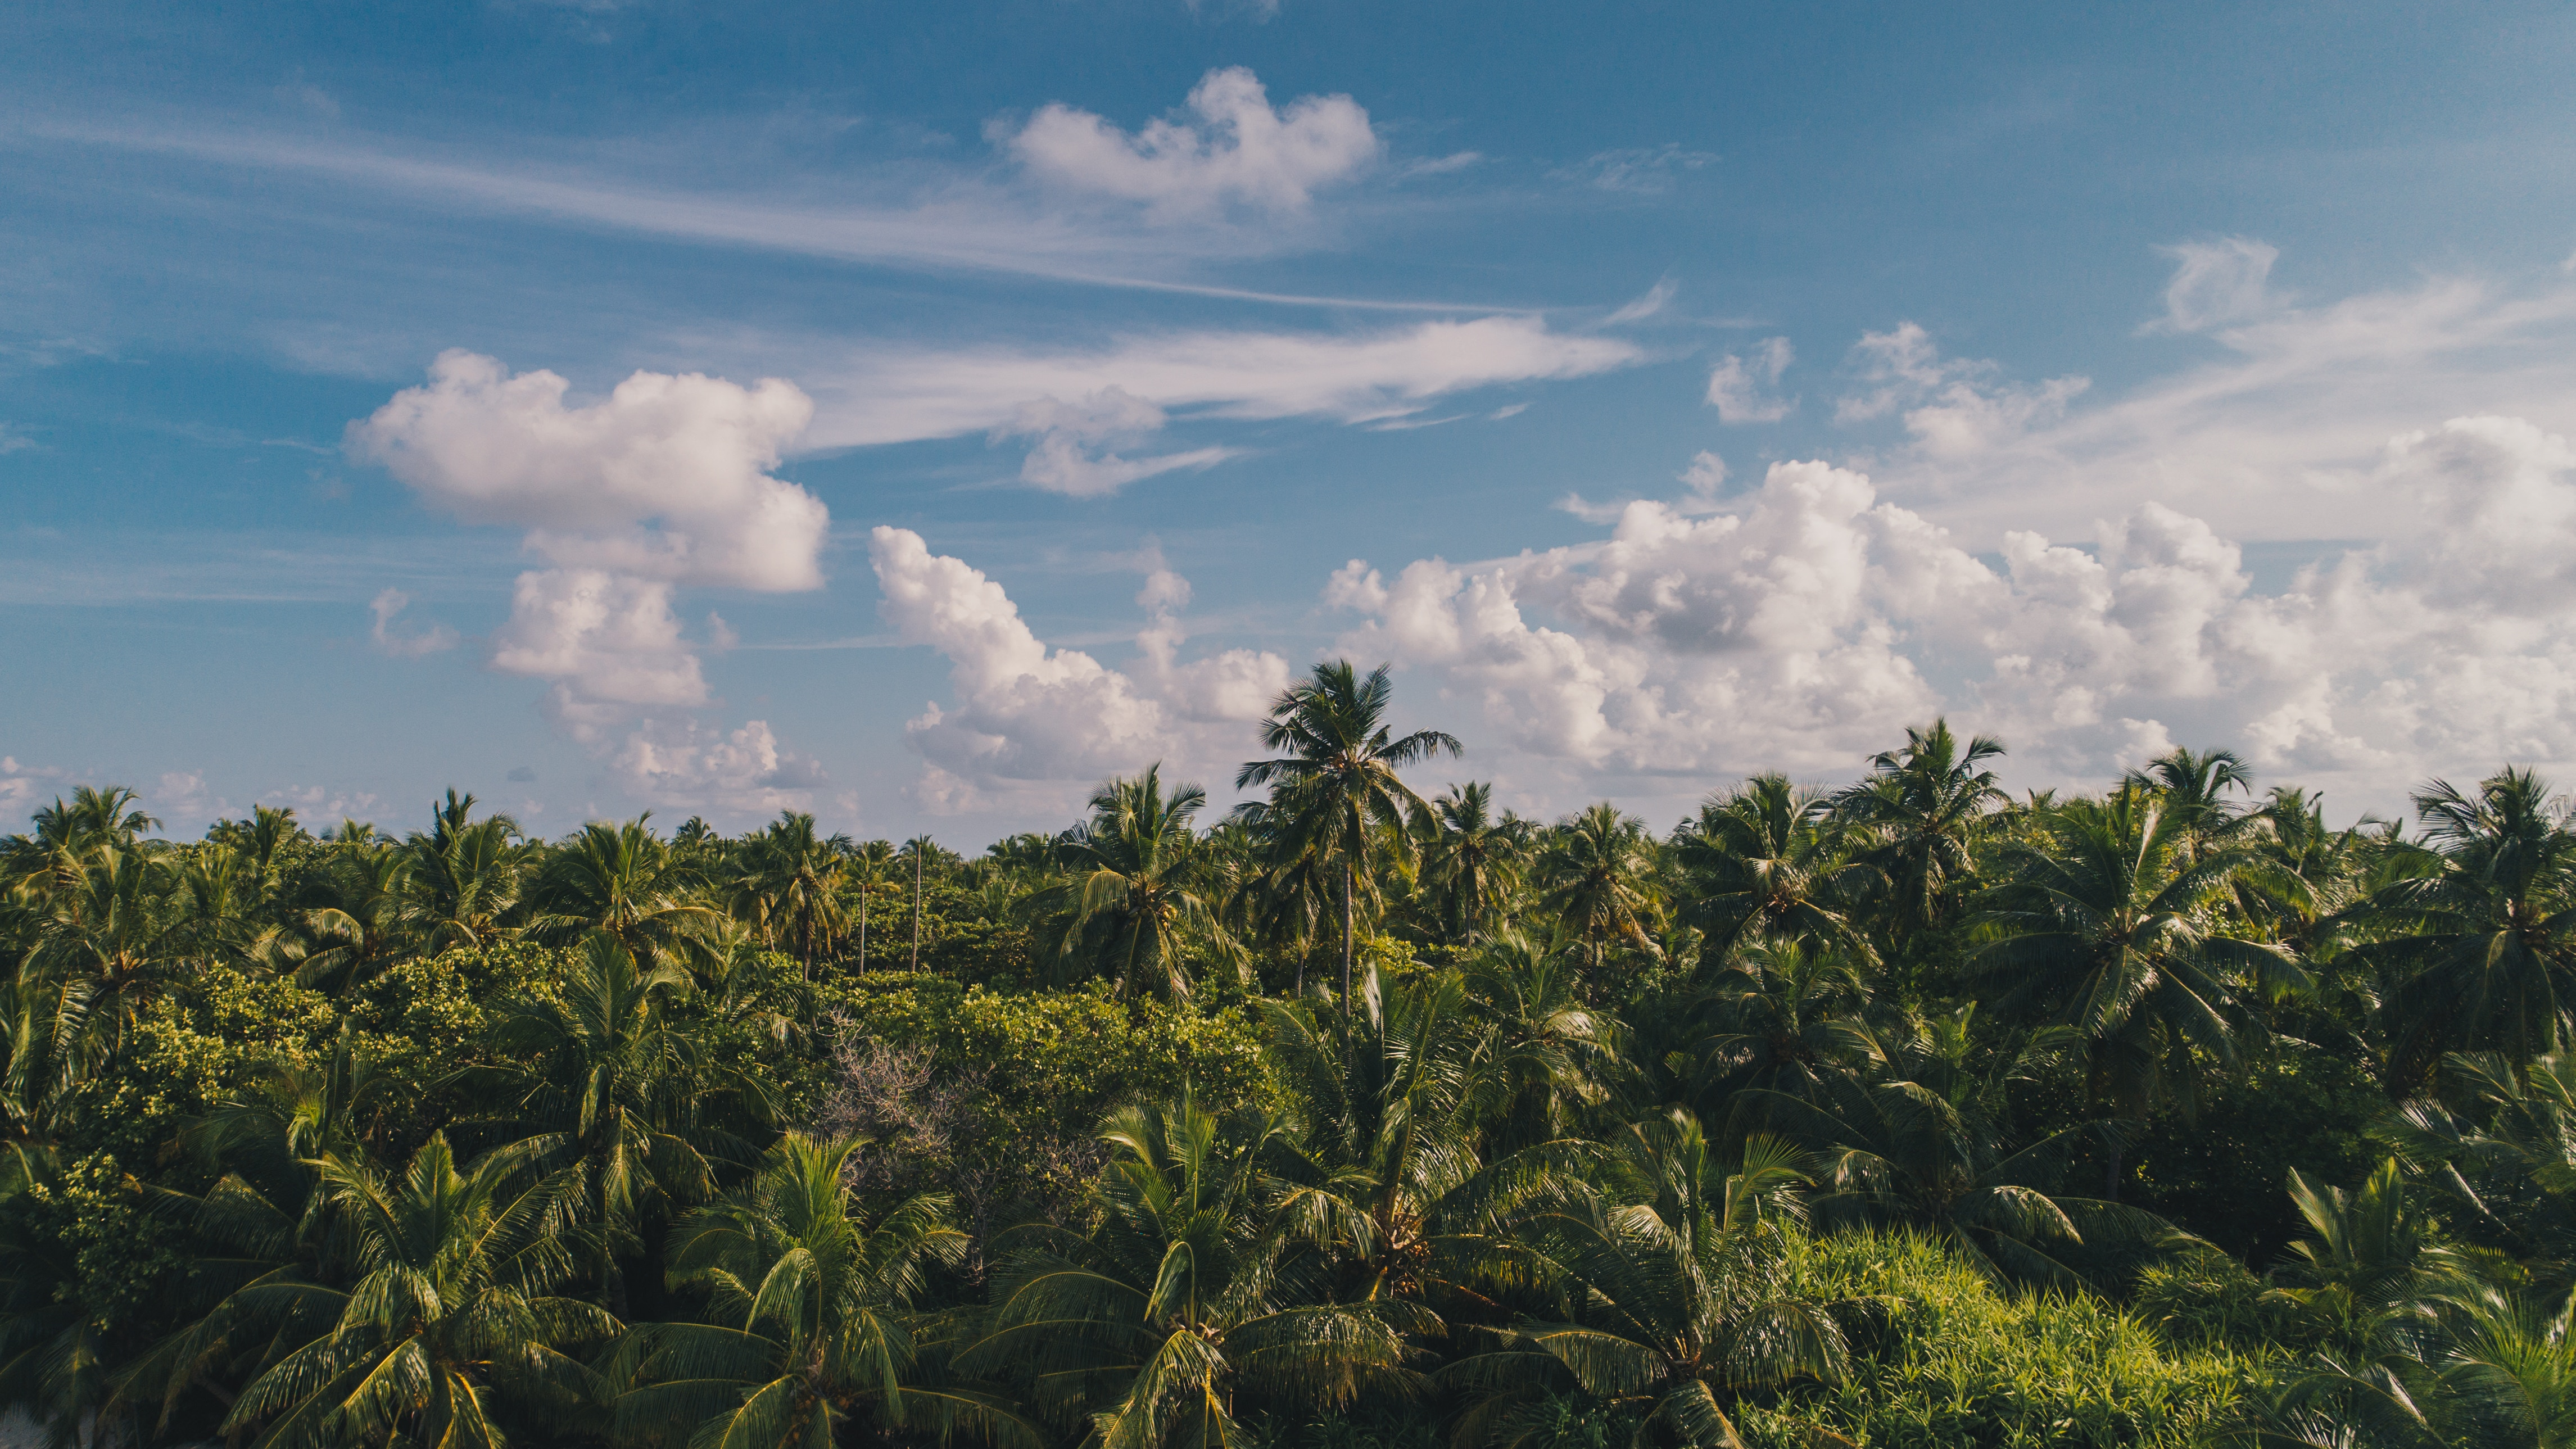 116954 download wallpaper Nature, Clouds, Sky, Tropics, Palms screensavers and pictures for free